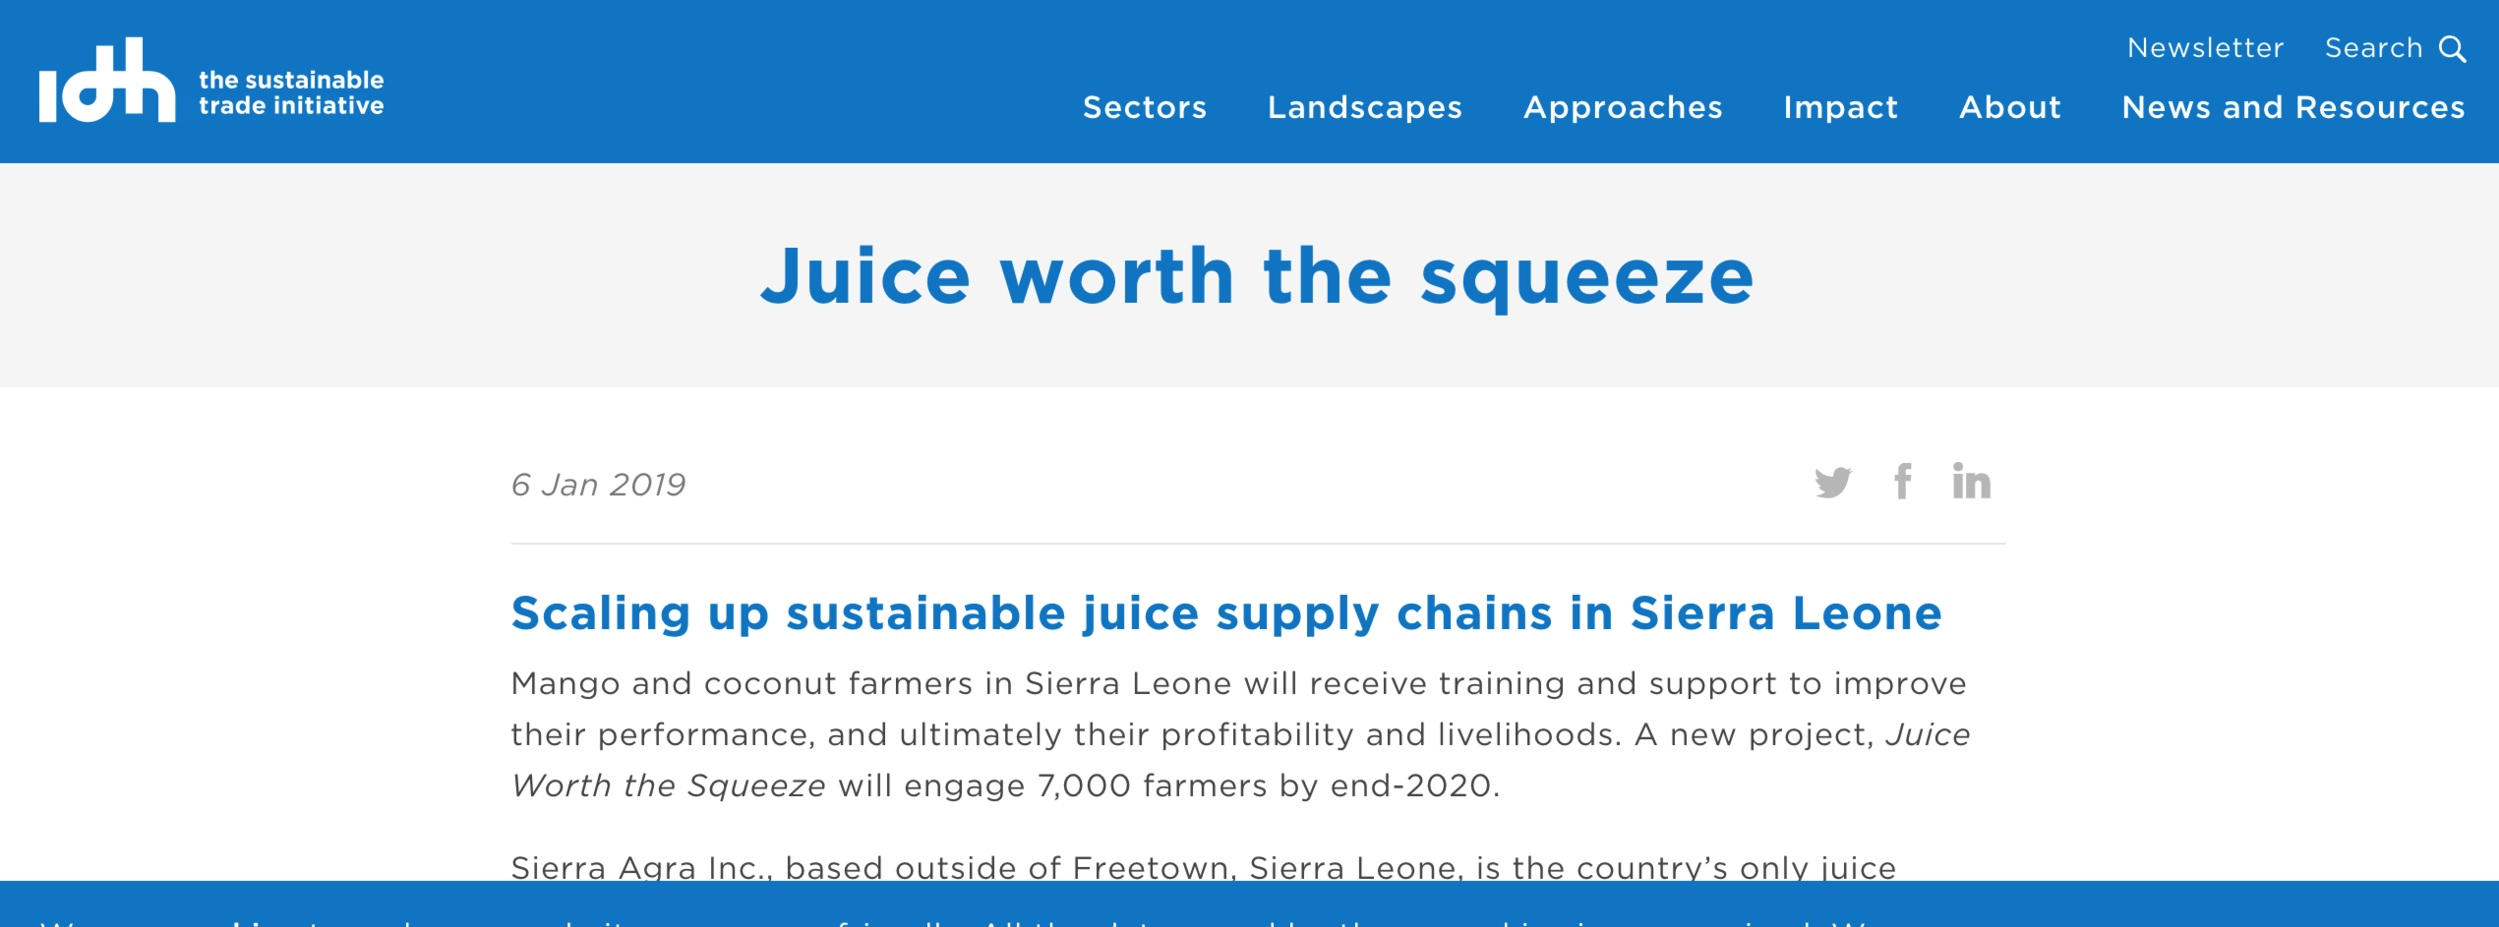 IDH's (The Sustainable Trade Initiative) featured article. Click  here  to see the full webpage.